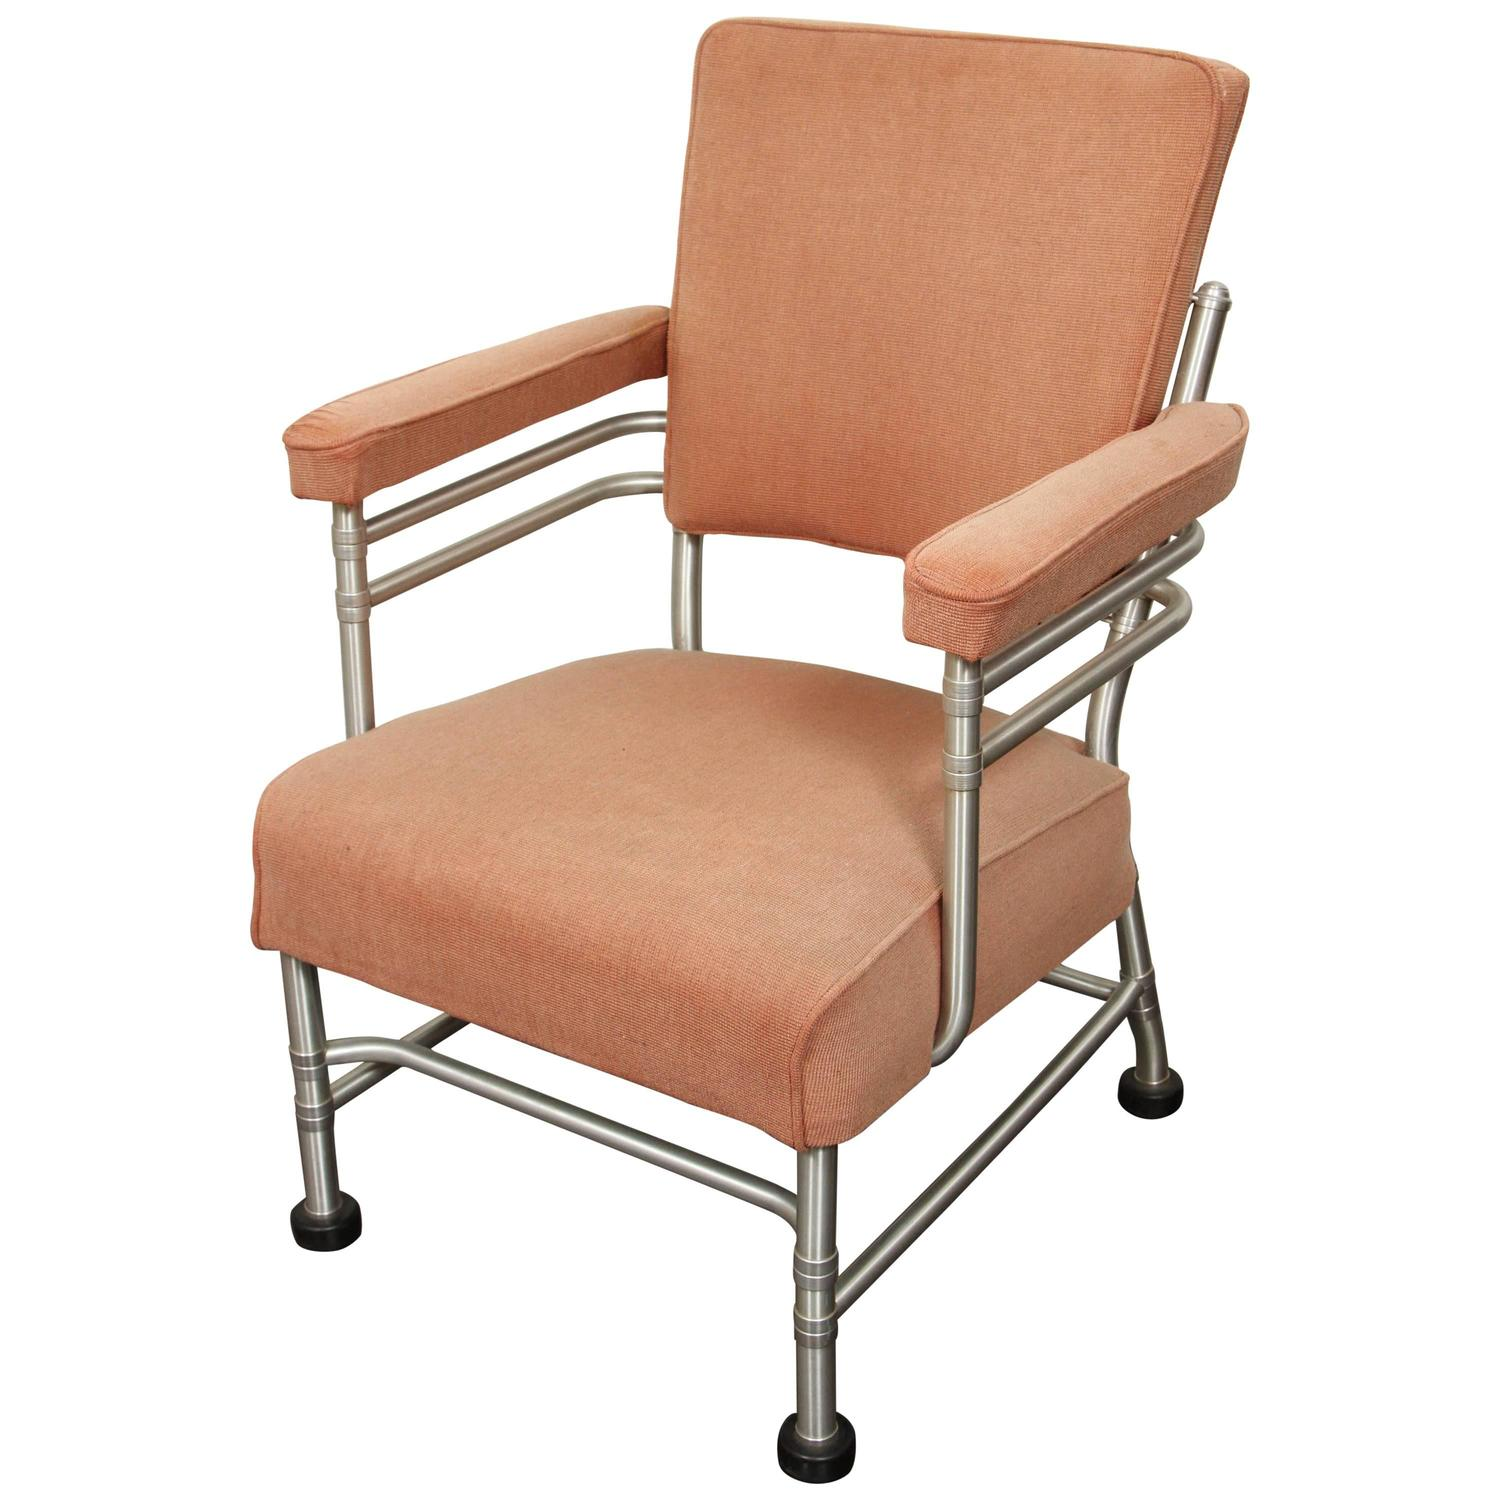 Warren McArthur Aluminum and Rubber Lounge Chair For Sale at 1stdibs